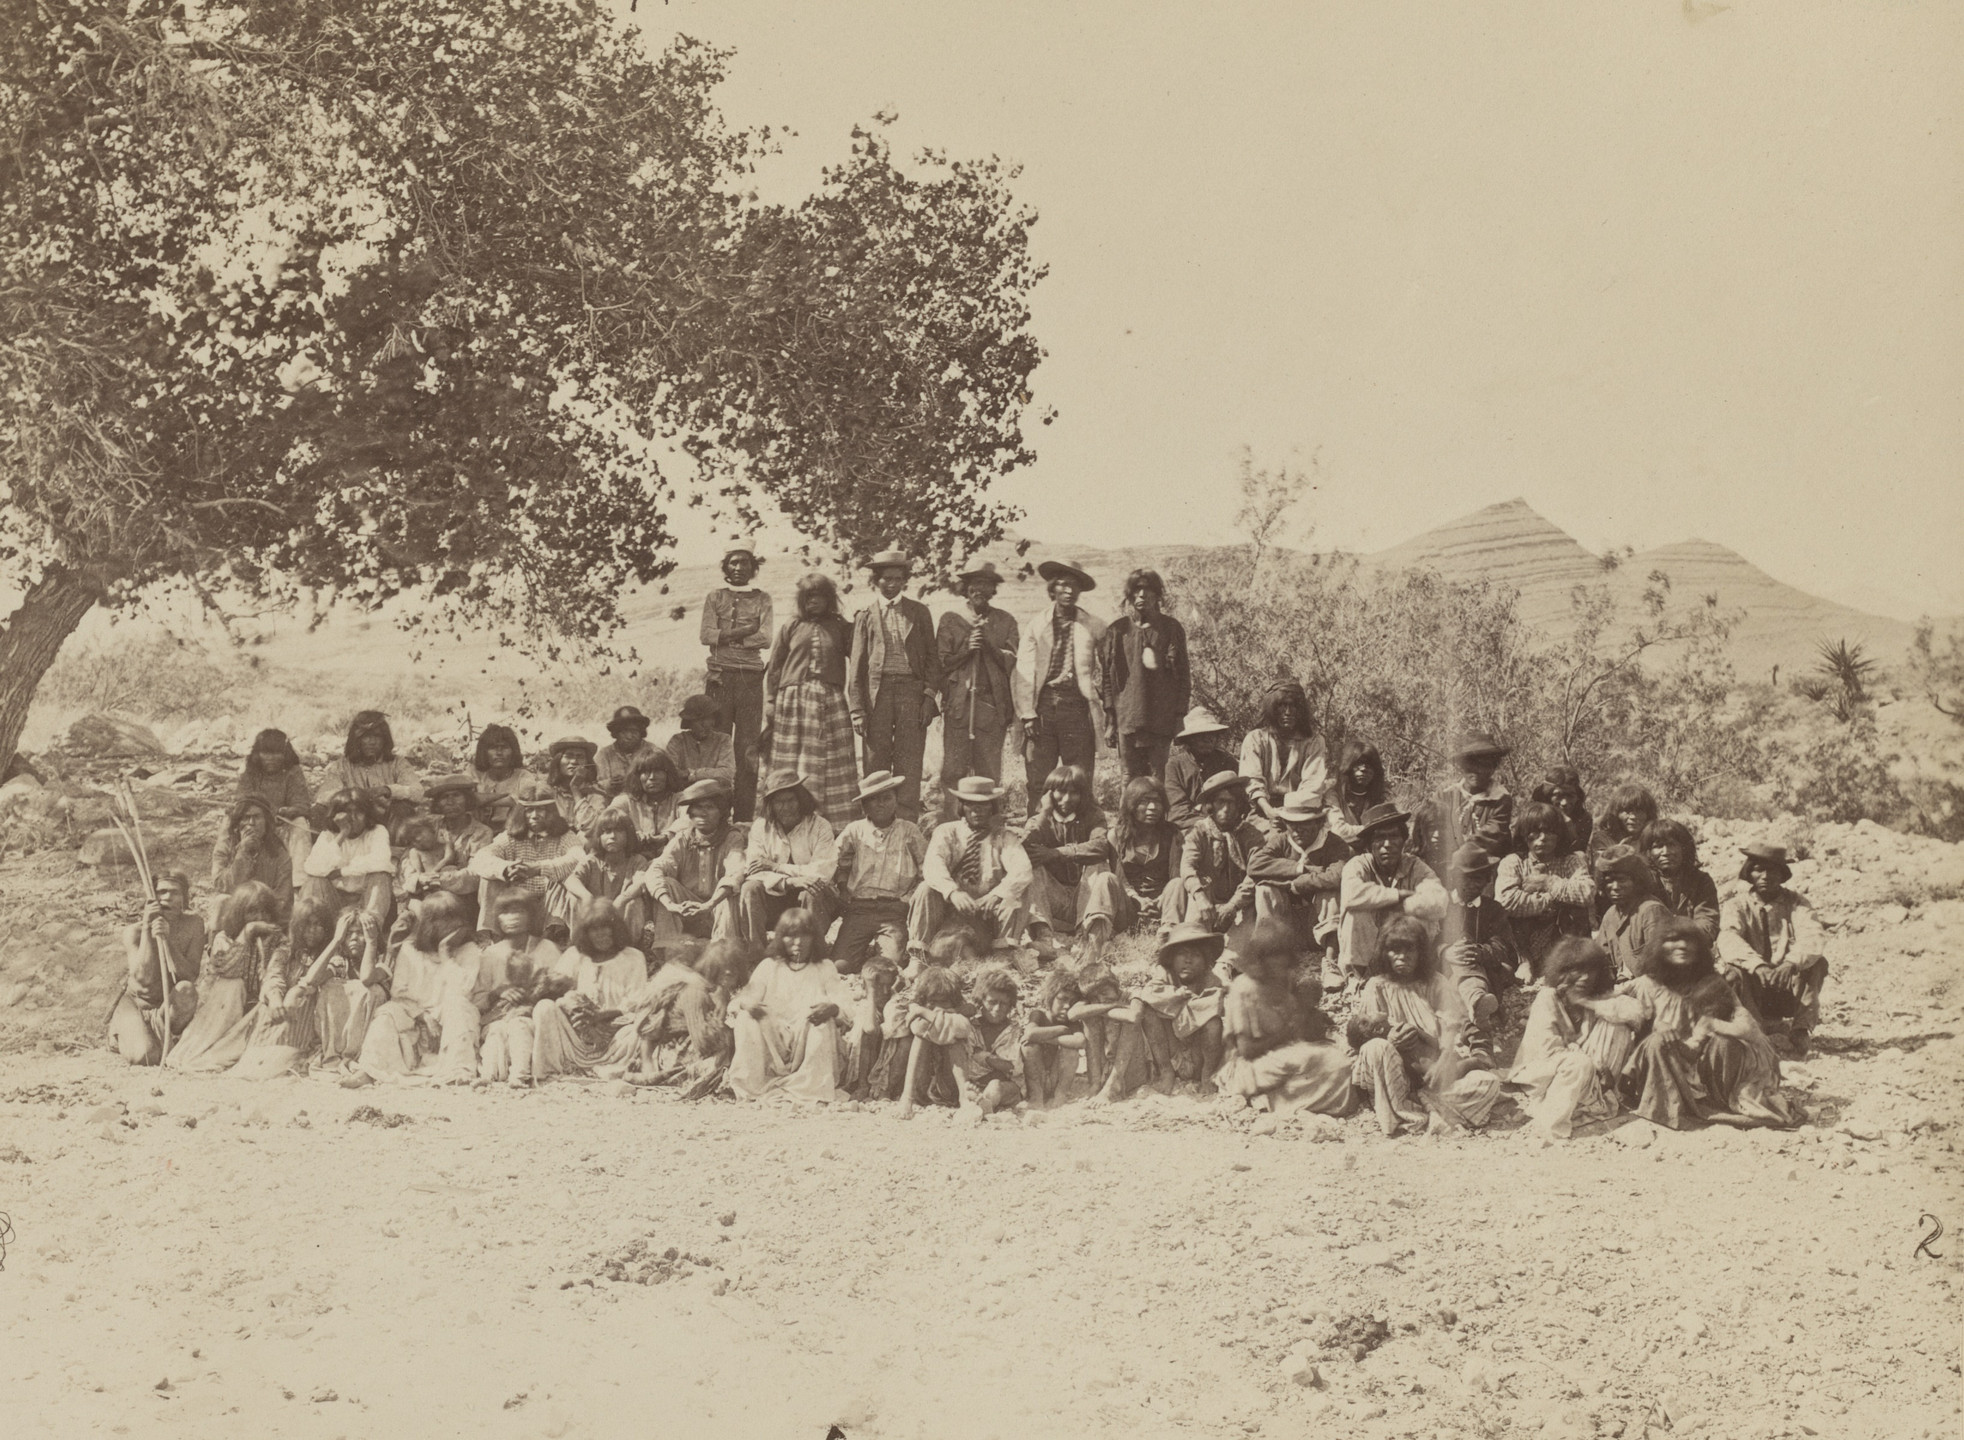 Timothy O'Sullivan. Group of Pah-Ute Indians, Nevada. Seasons of 1871, 1872 and 1873